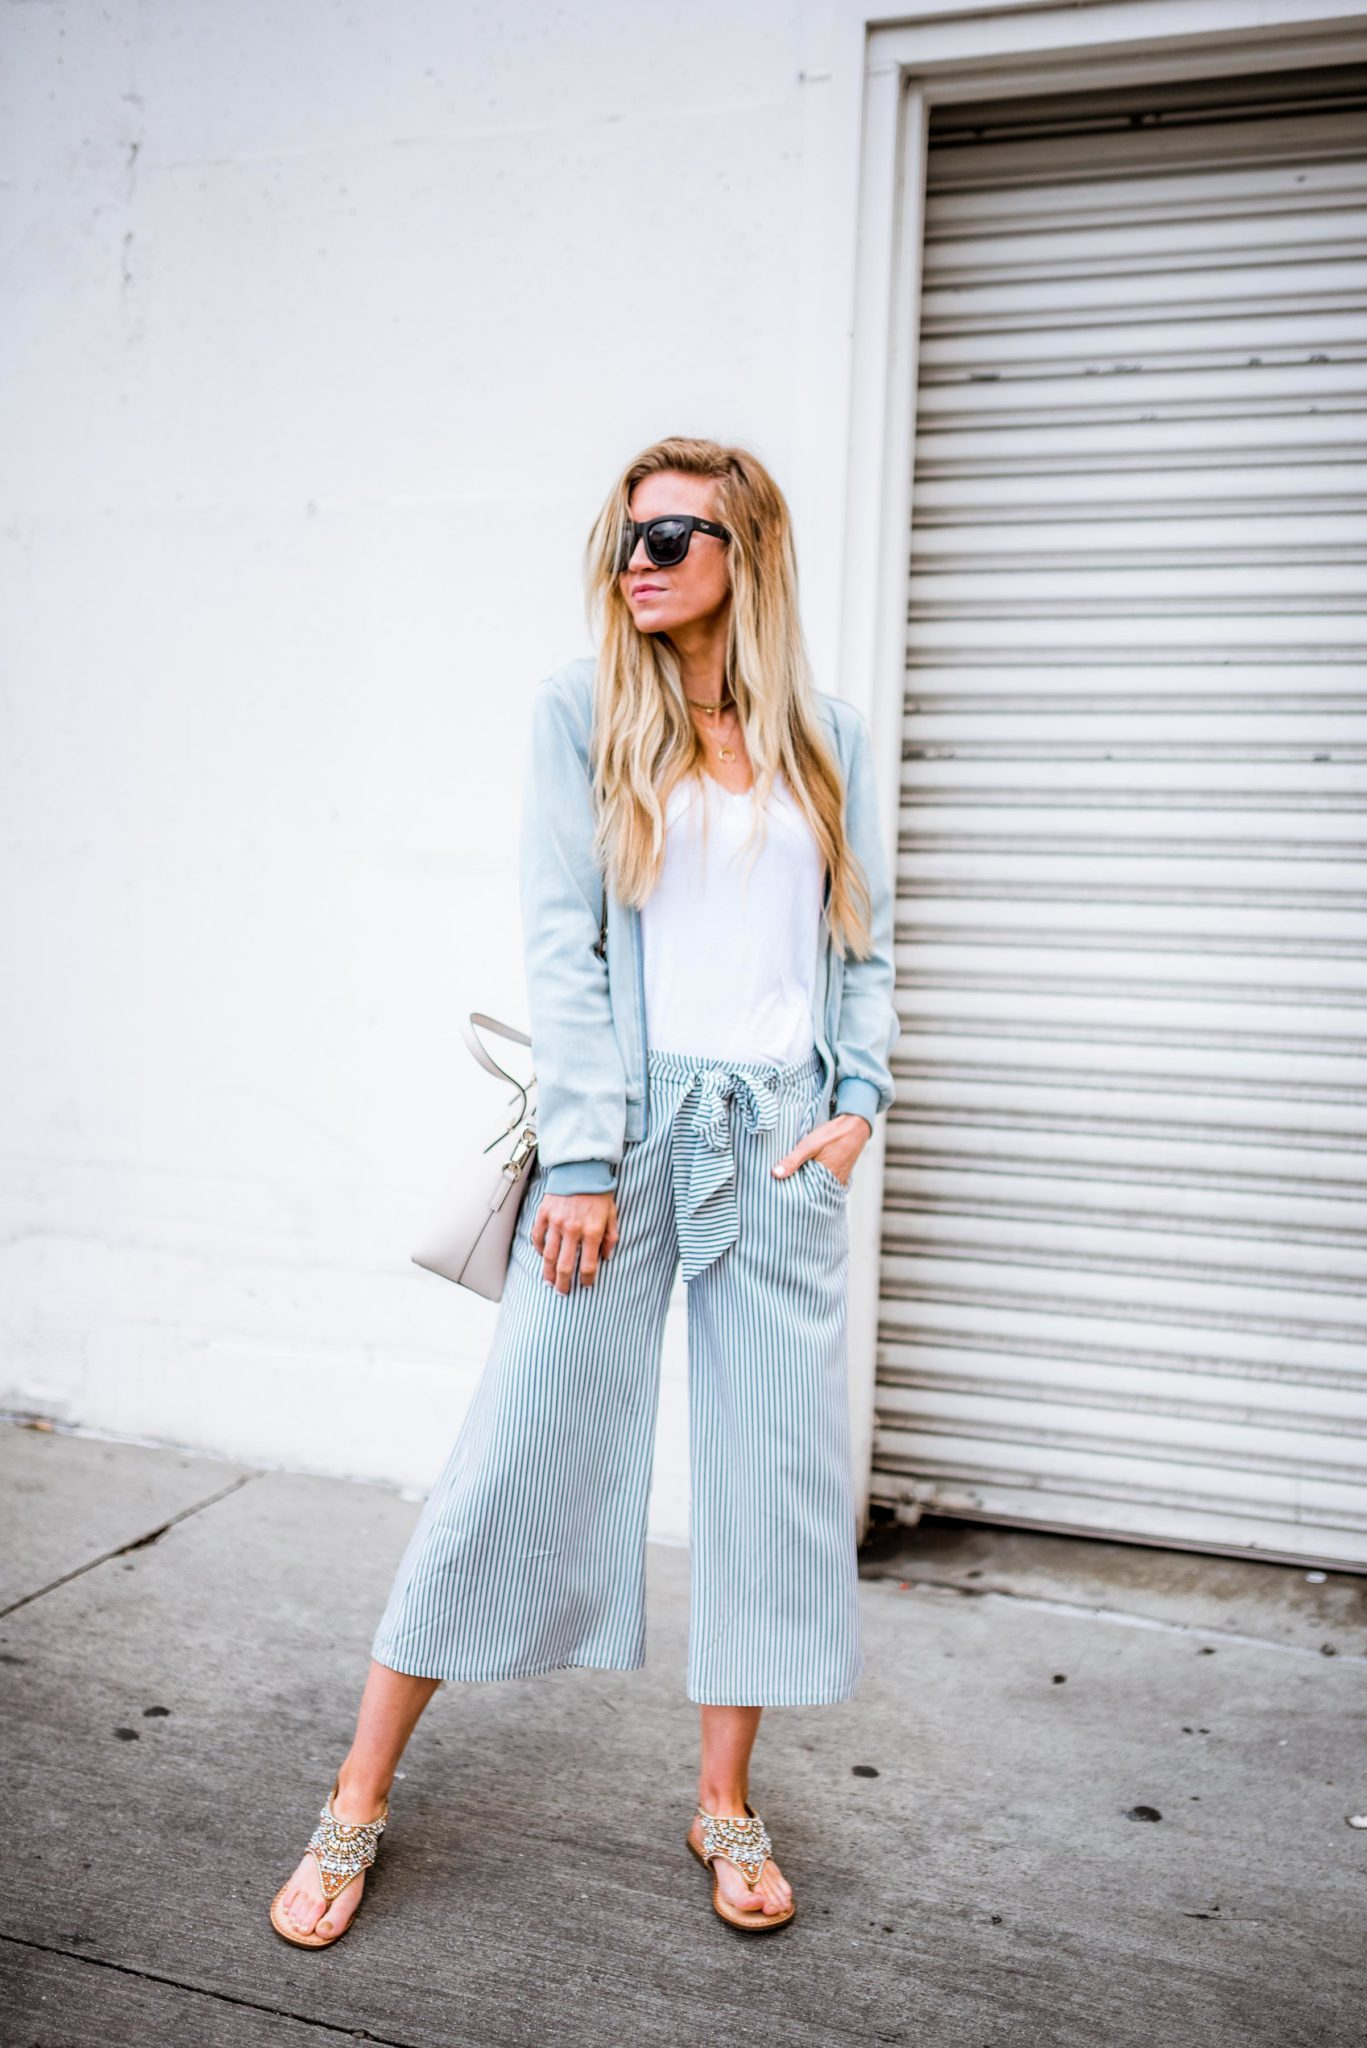 5 SPRING PANTS I'M LOVING + SHOP MY INSTAGRAM VIA EMAIL OPTION